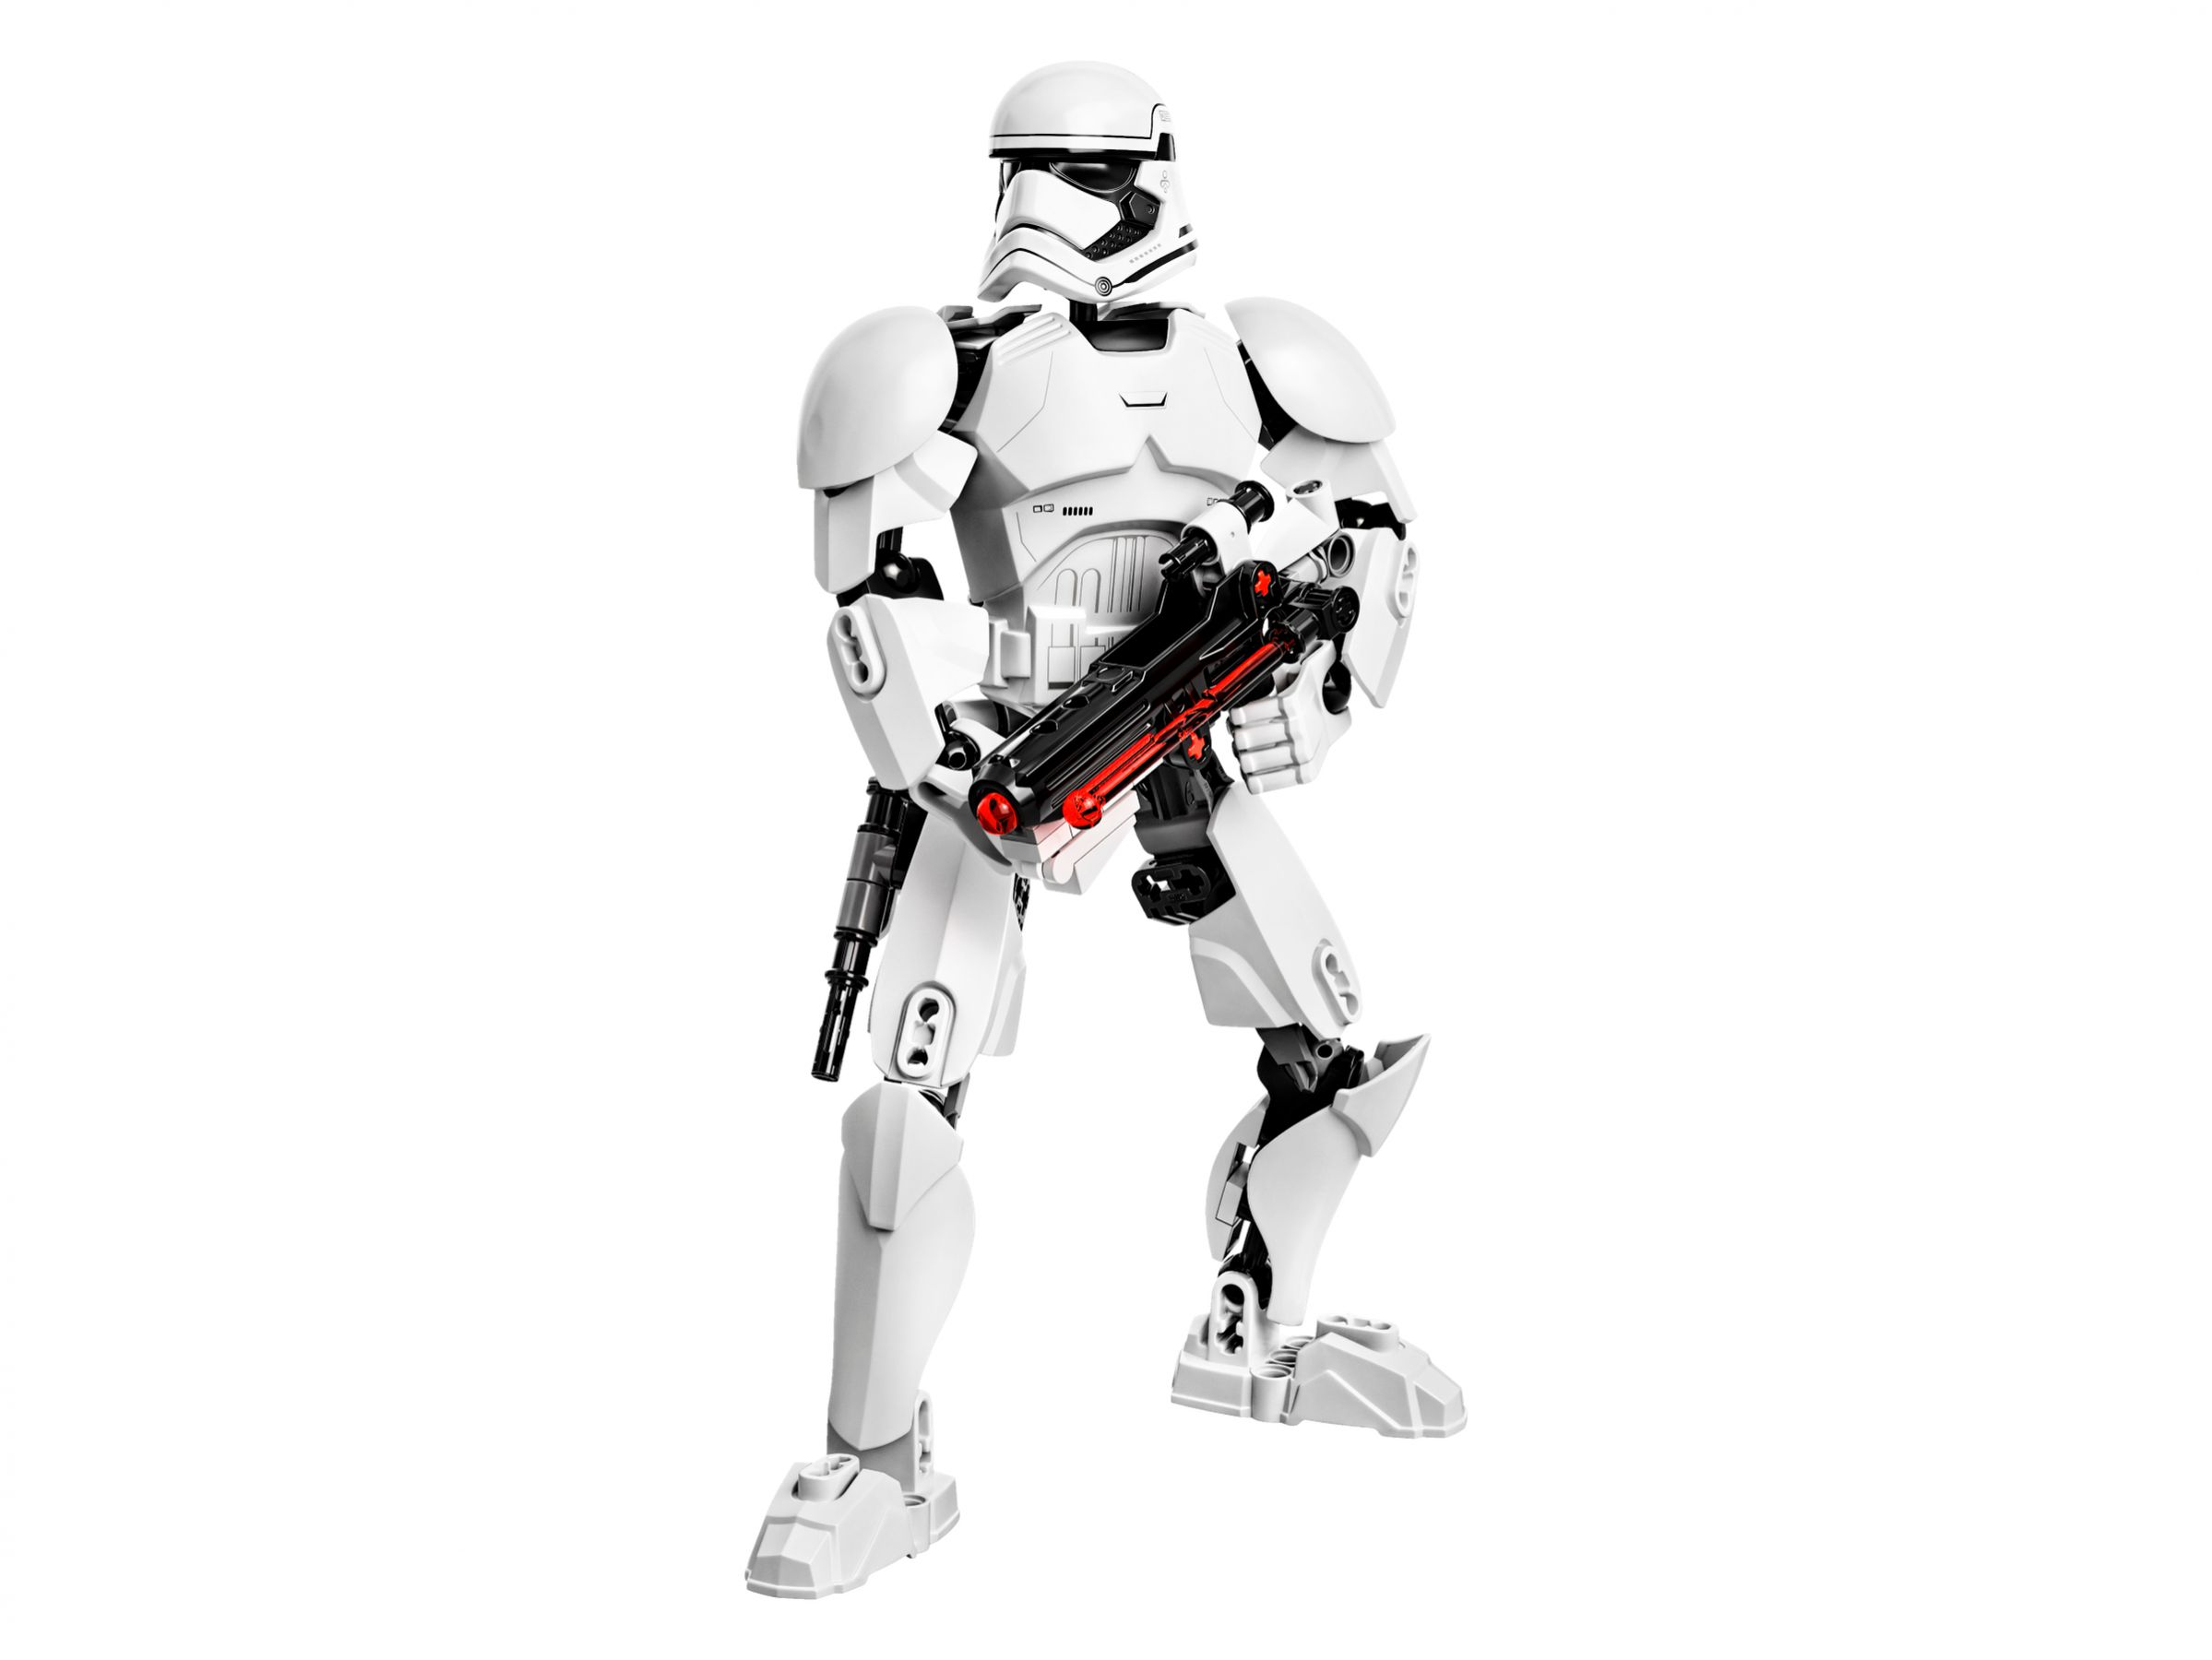 LEGO Star Wars Buildable Figures 75114 First Order Stormtrooper™ LEGO_75114.jpg